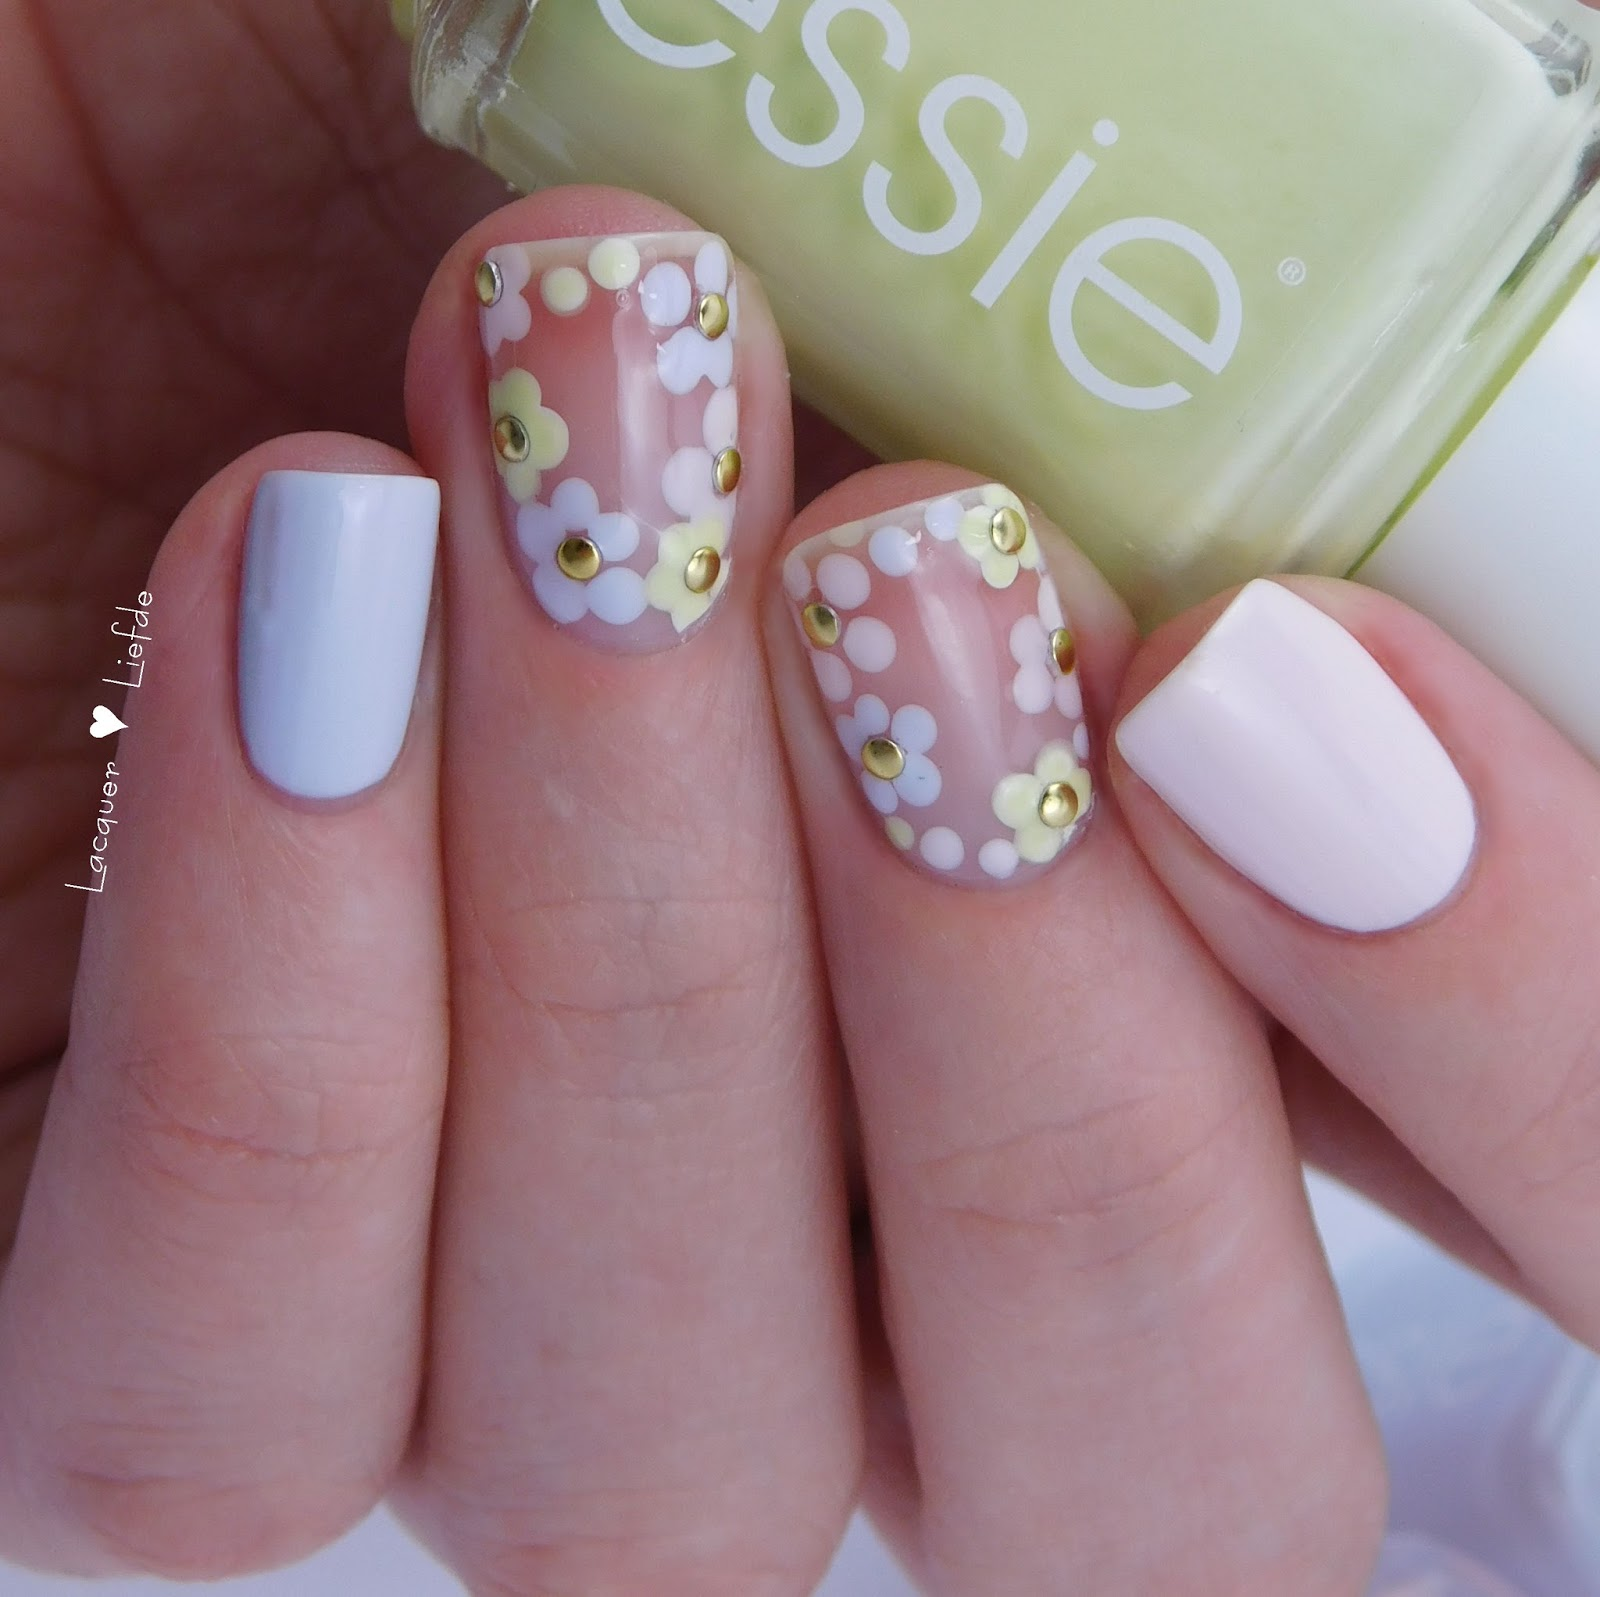 Lacquer ❤ Liefde: Sping Flower Power